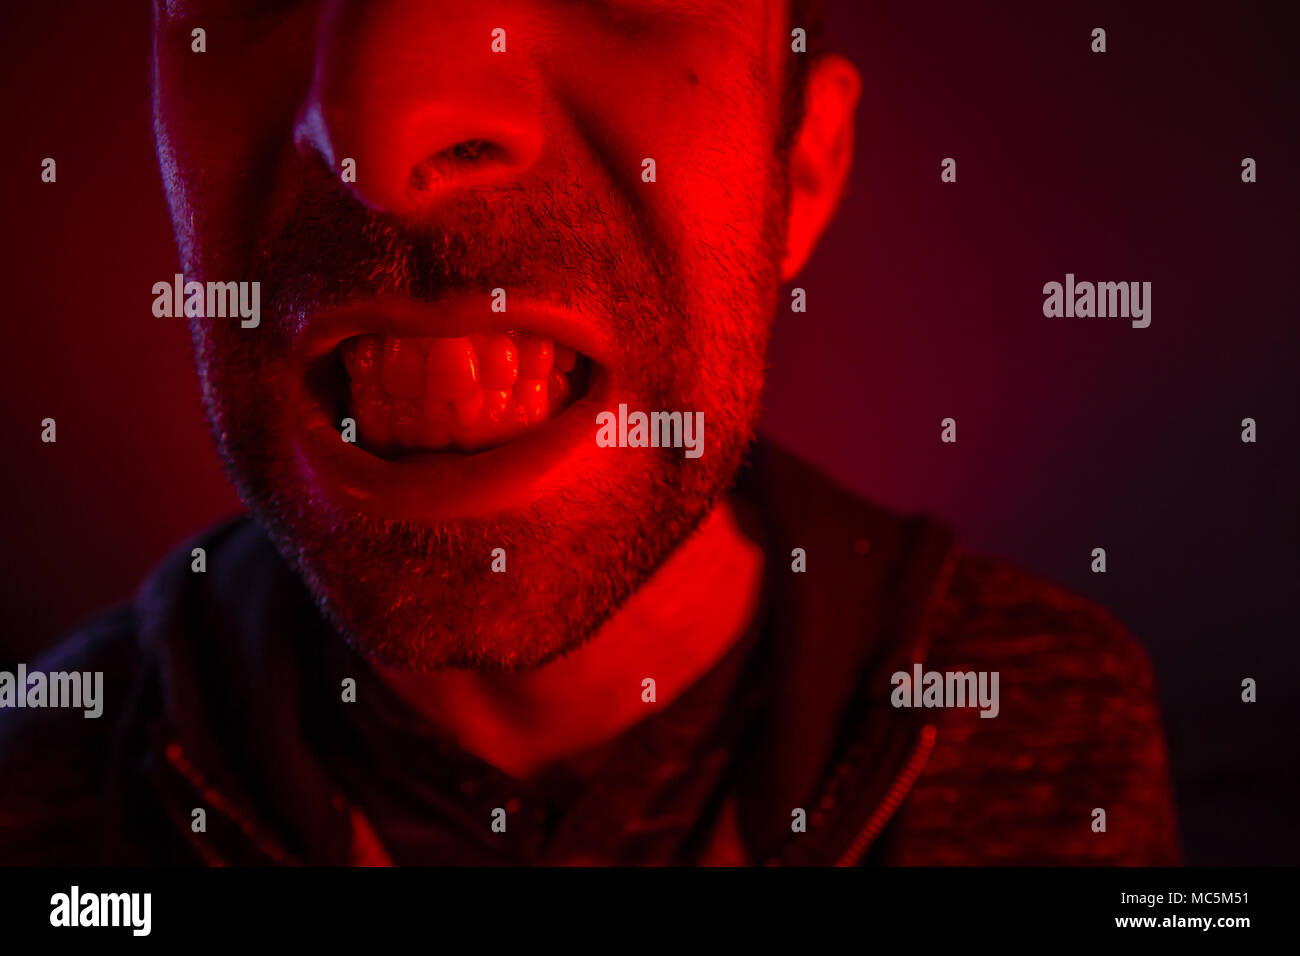 Man with angry facial expression. Close up portrait of a man with bared teeth. - Stock Image